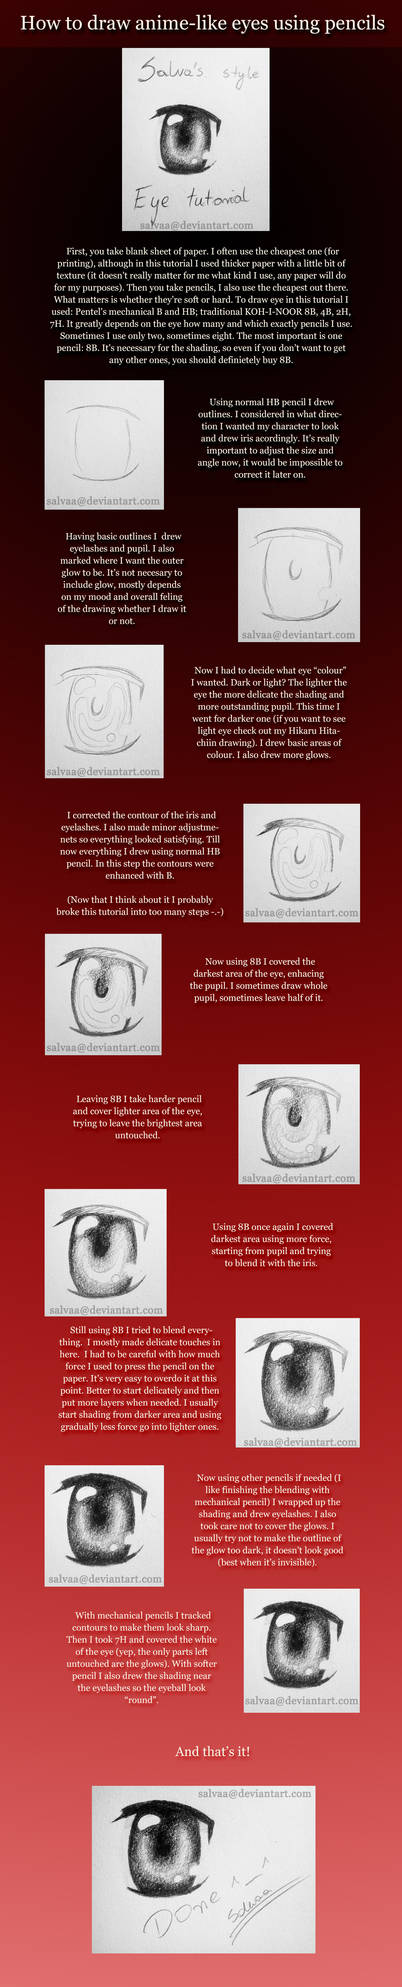 Anime-like eye tutorial